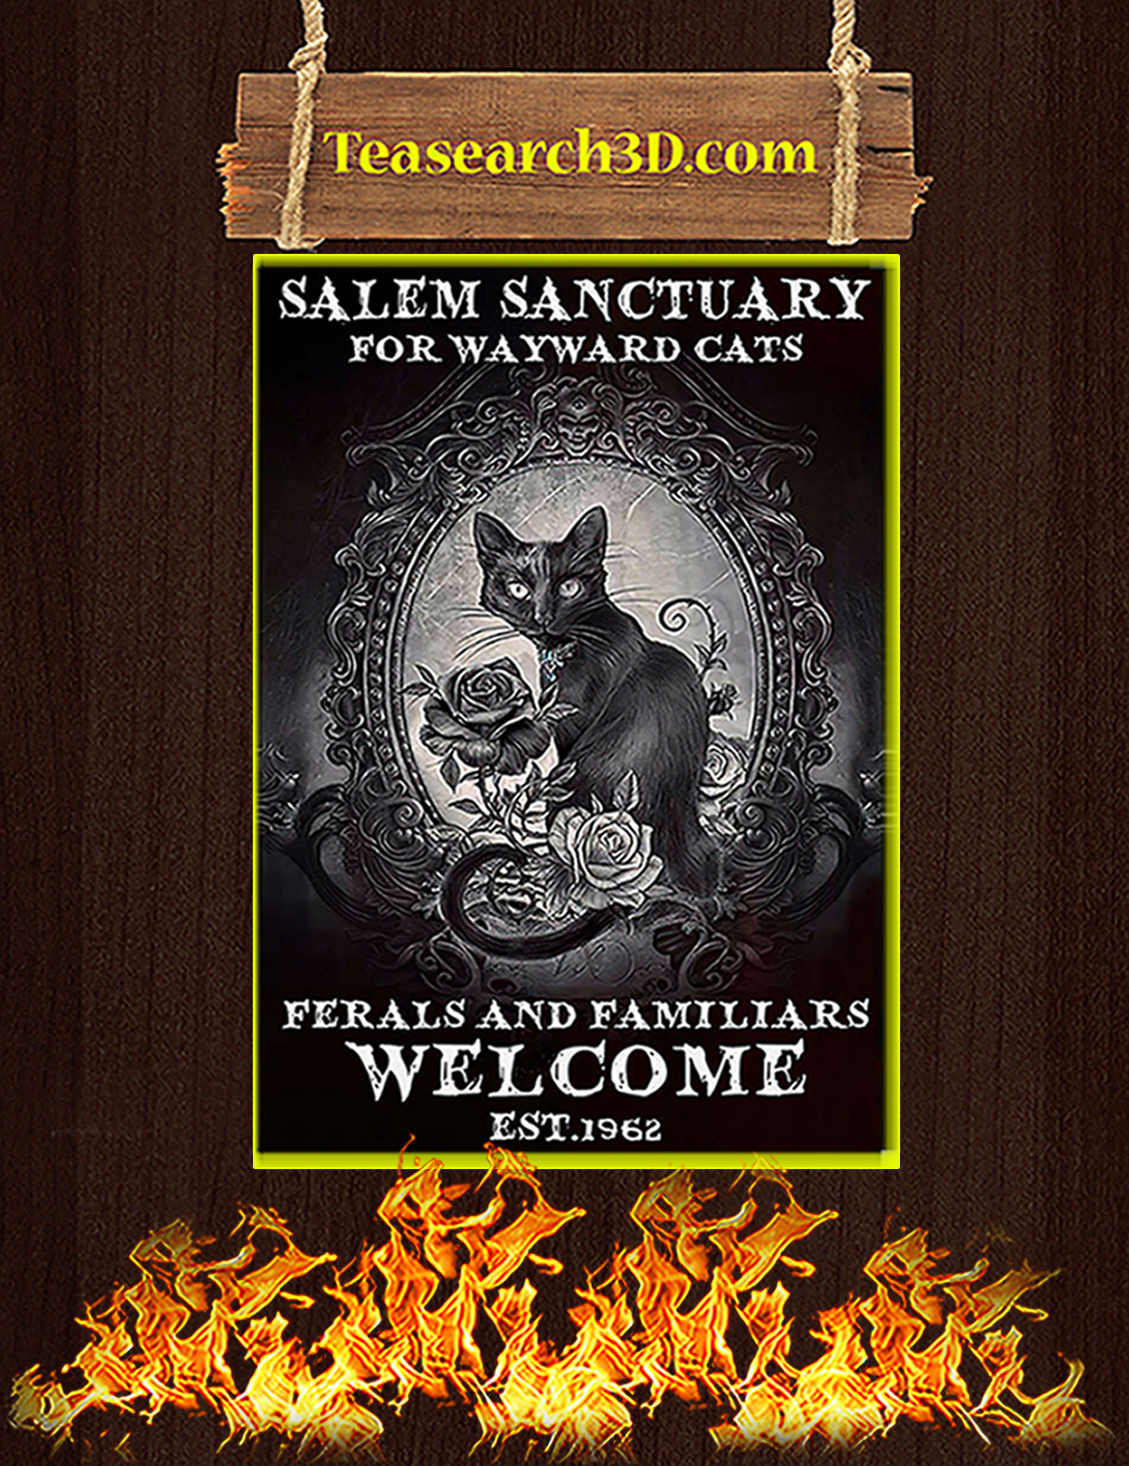 Gothic cat salem sanctuary for wayward cats poster A3